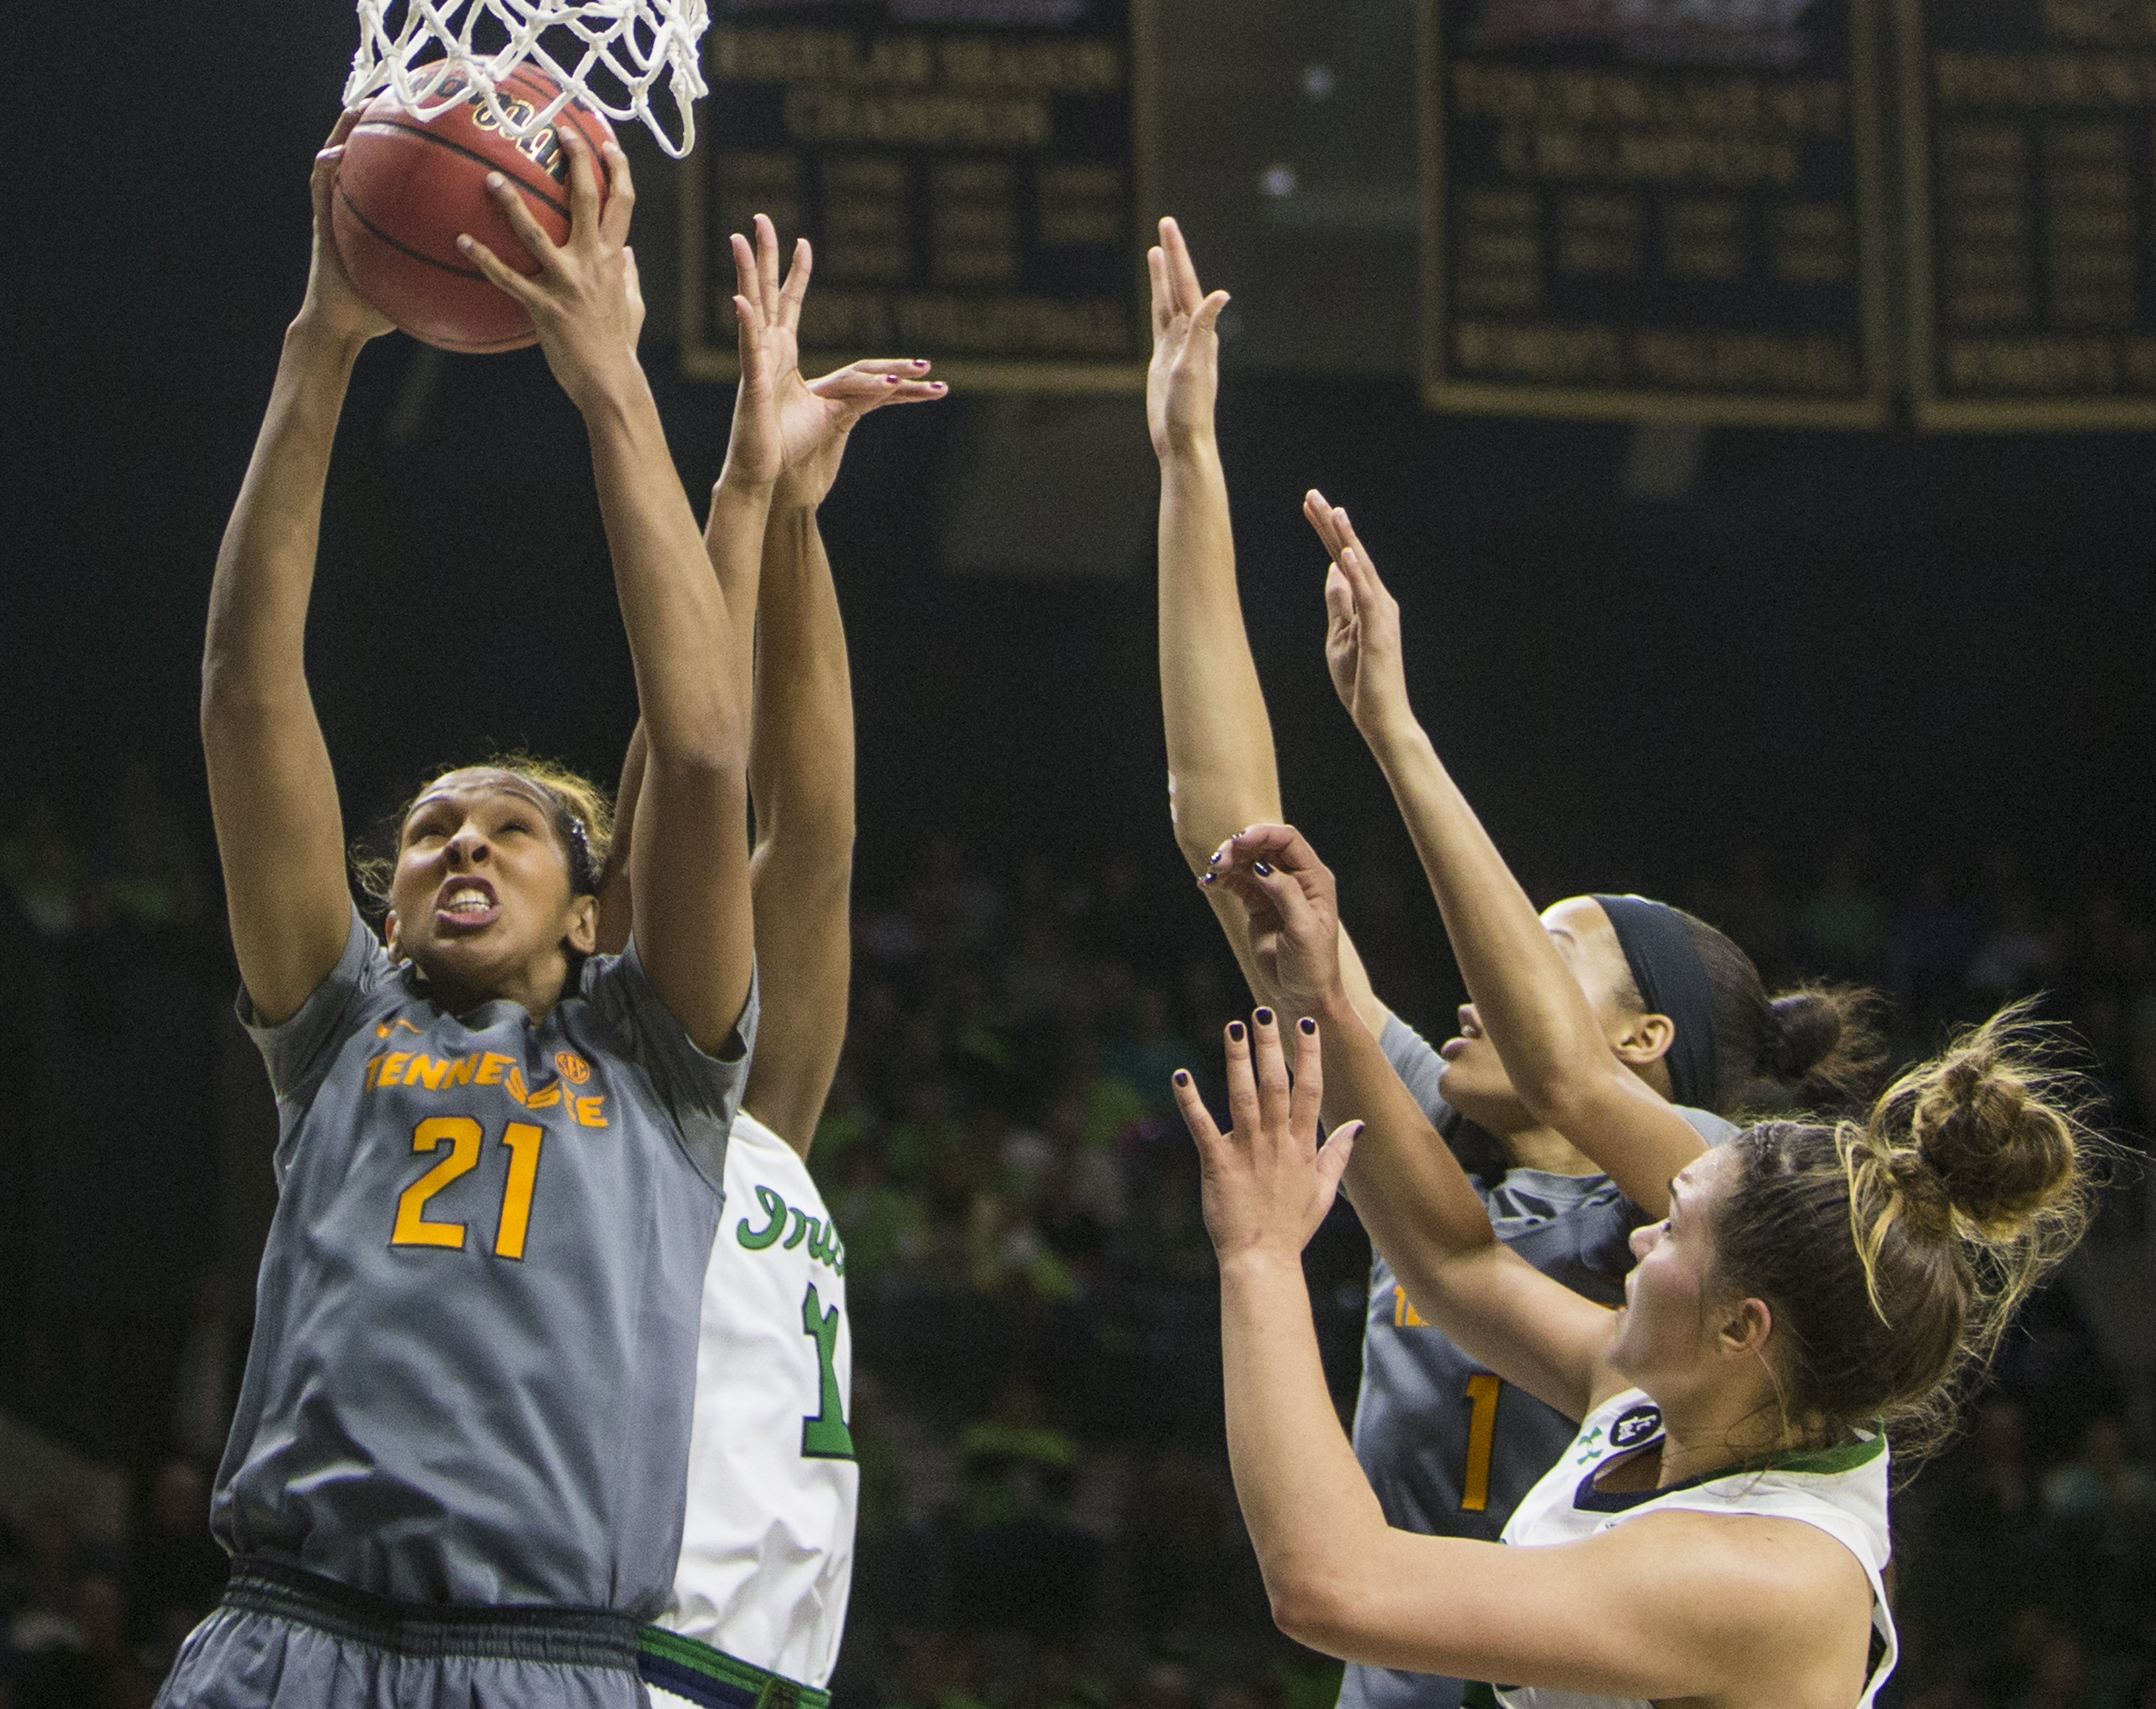 Tennessee's Mercedes Russell (21) grabs a rebound during the first half of an NCAA college basketball game, Monday, Jan. 18, 2016, in South Bend, Ind. (AP Photo/Robert Franklin)